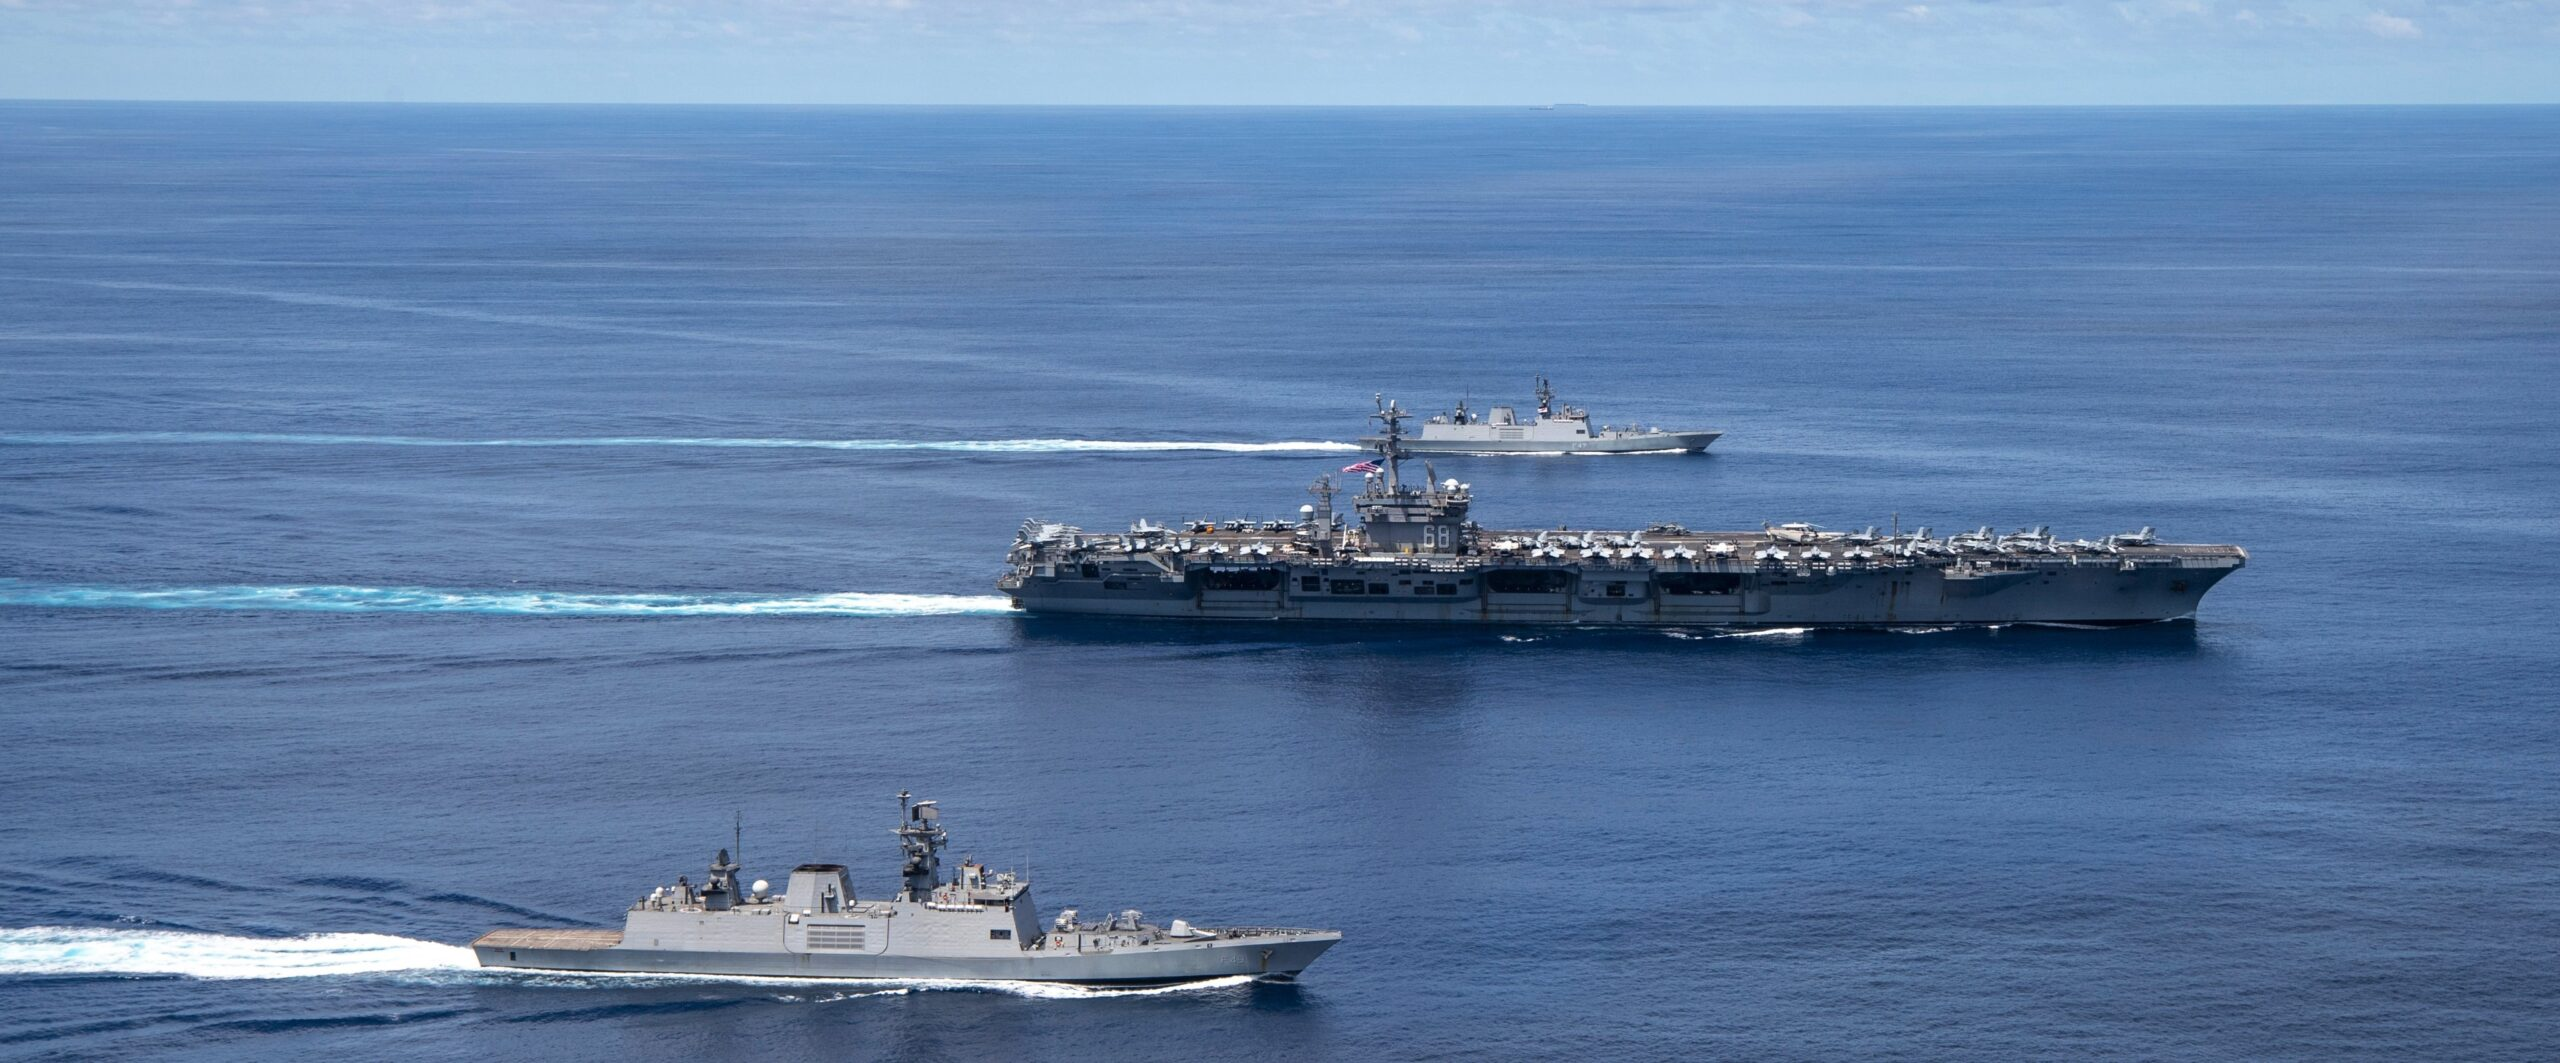 Nimitz Strike Group Participates in Cooperative Exercises with Indian Navy  - Naval News